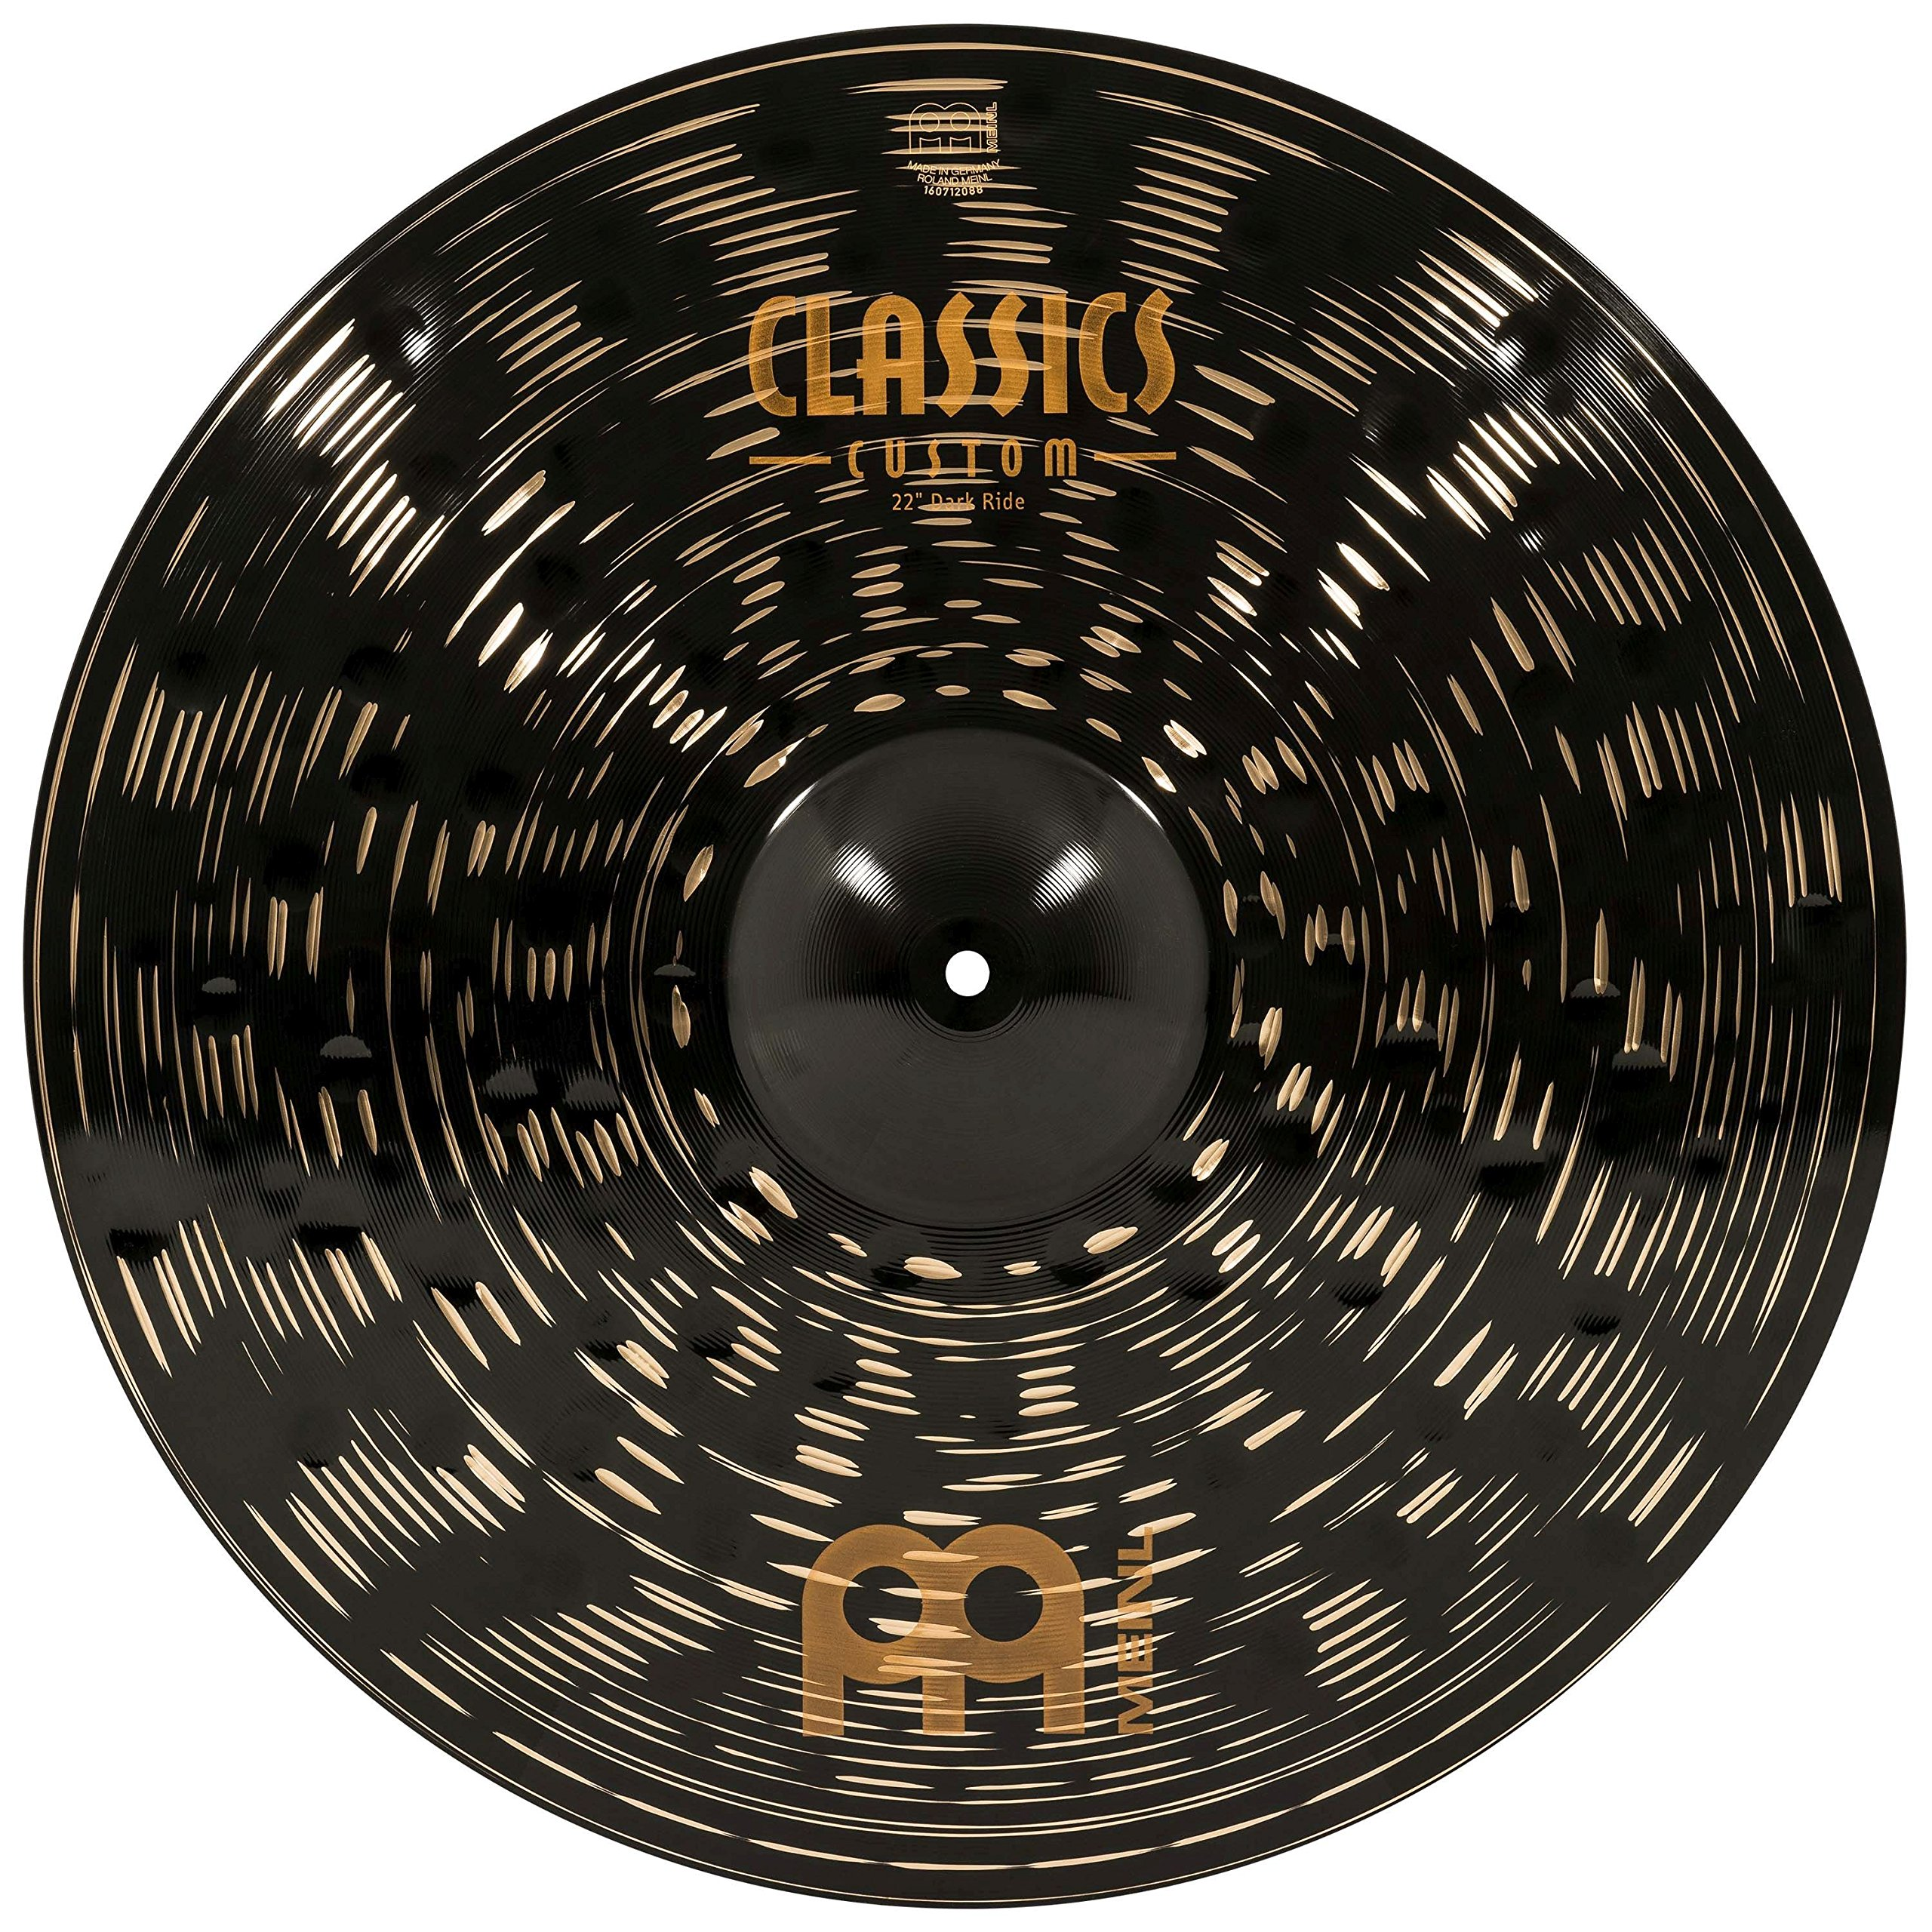 Meinl 22'' Ride Cymbal - Classics Custom Dark - Made in Germany, 2-YEAR WARRANTY (CC22DAR) by Meinl Cymbals